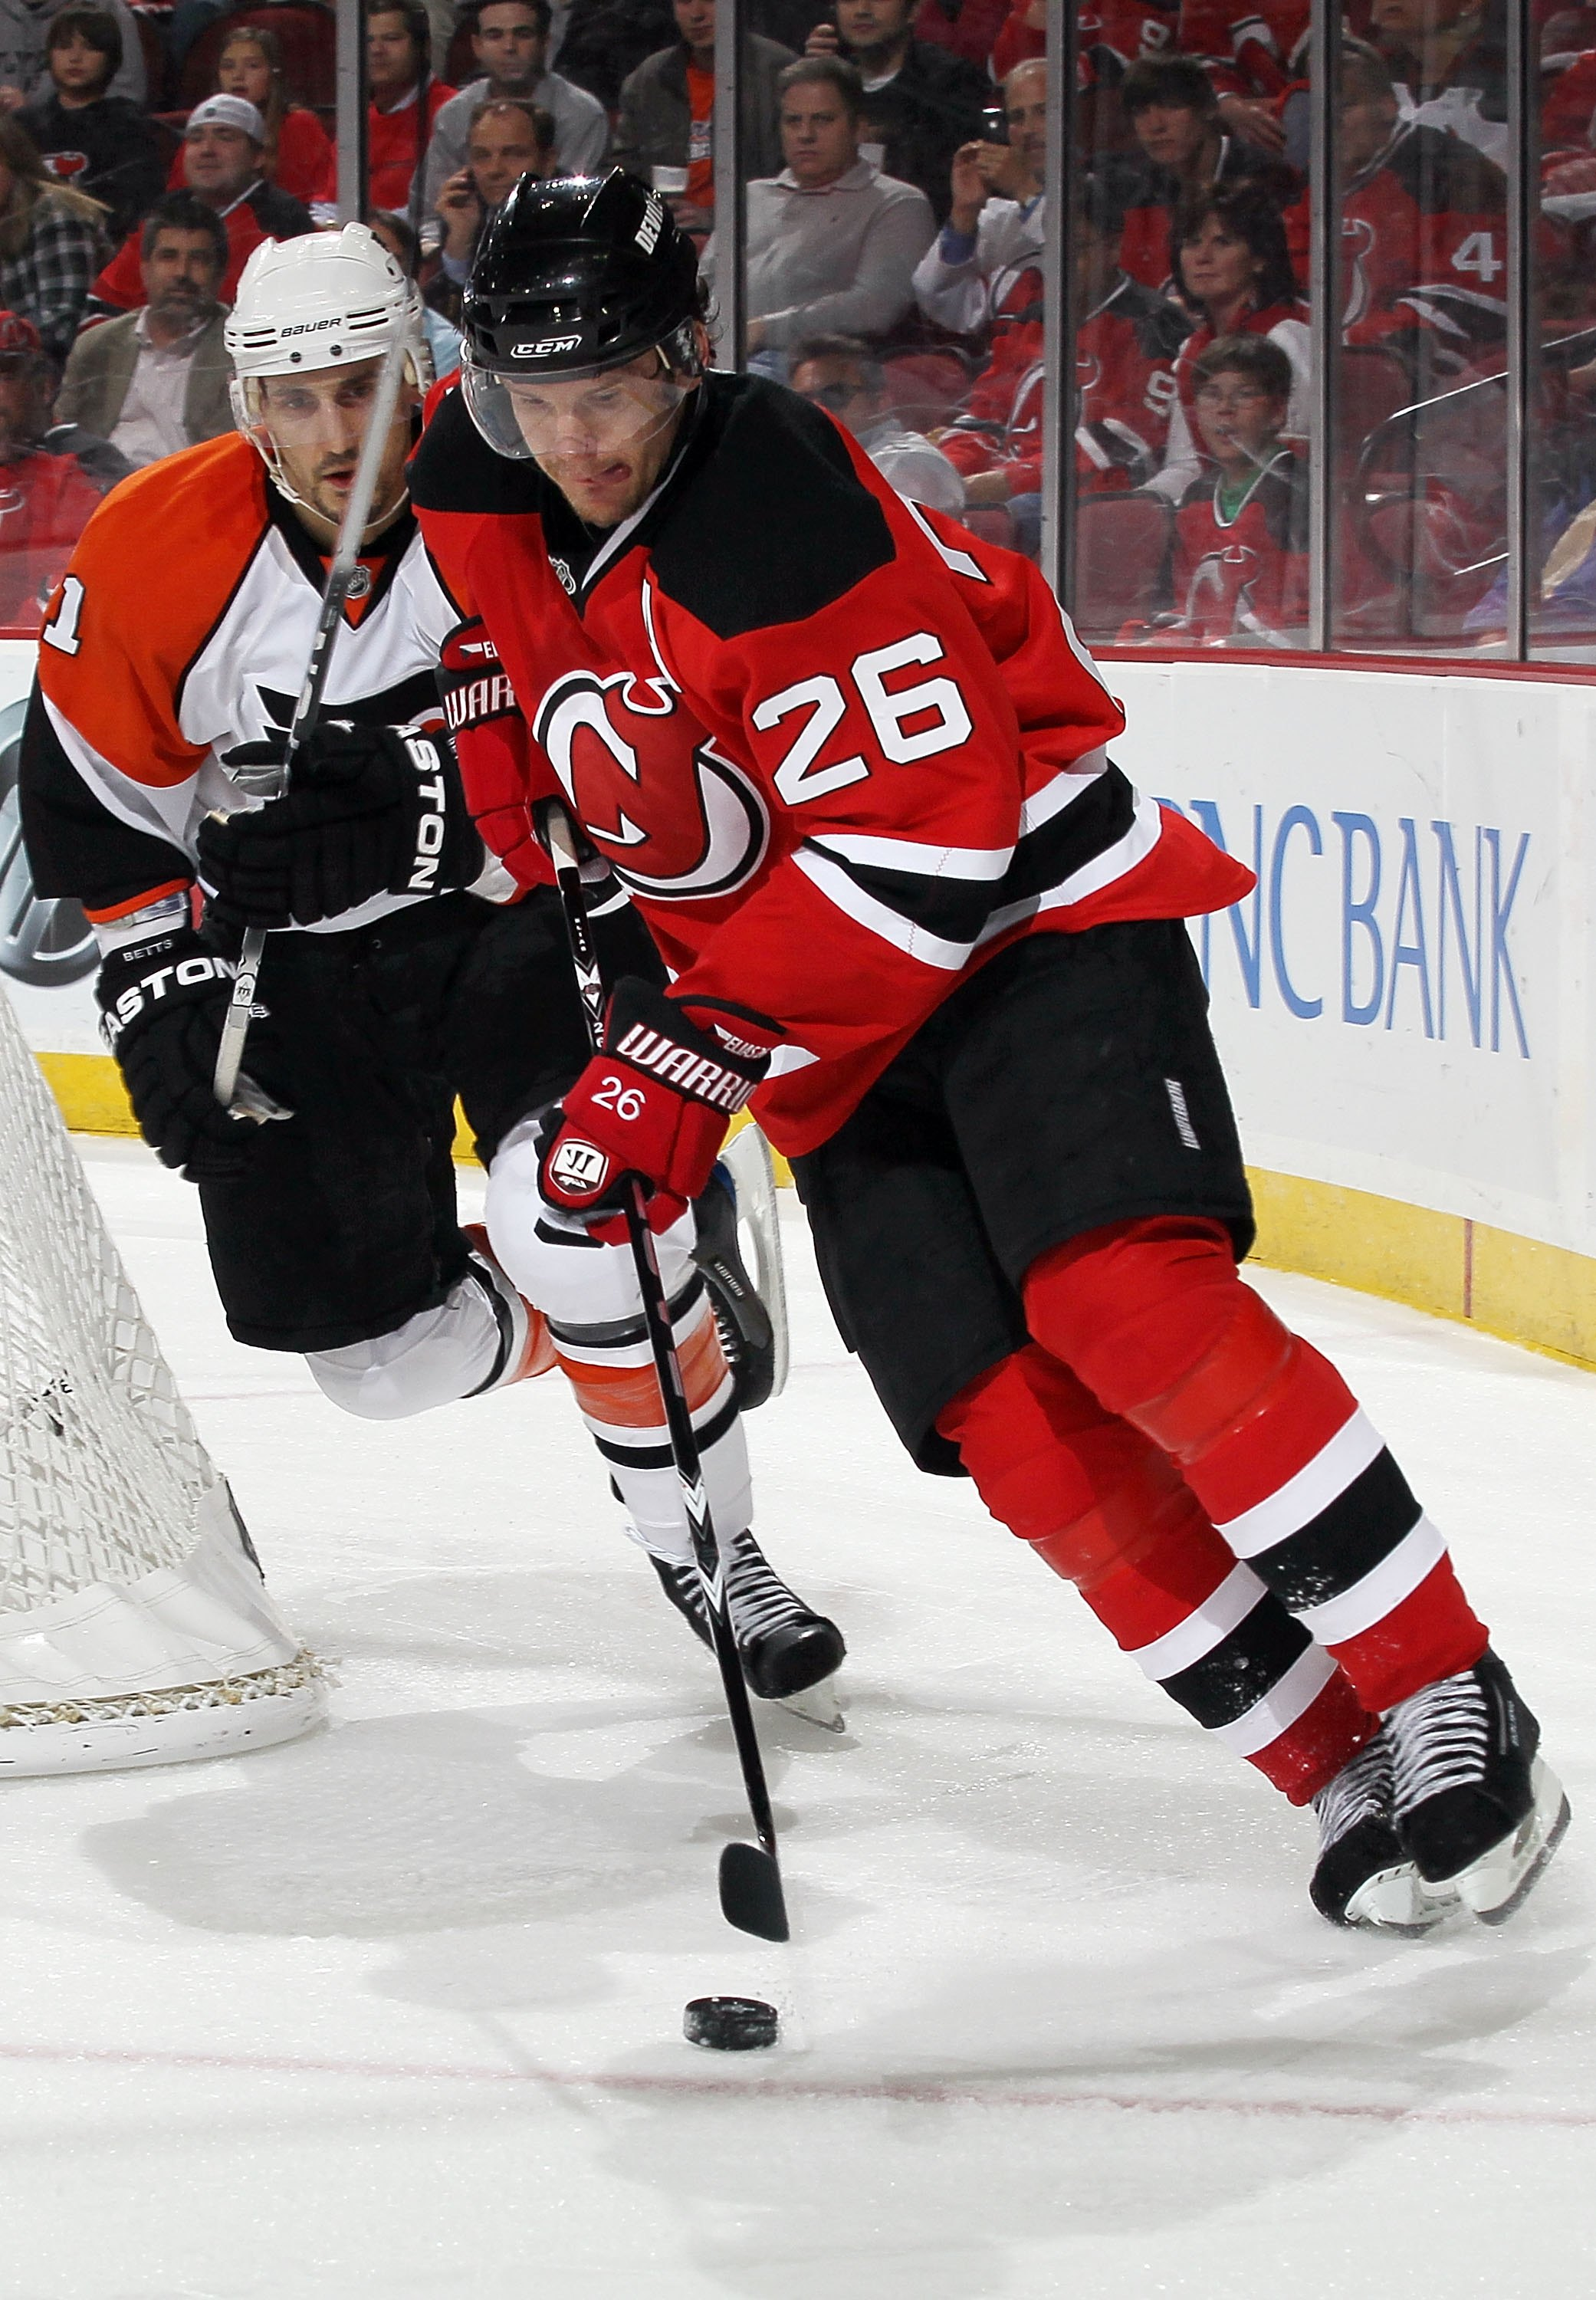 NEWARK, NJ - APRIL 22:  Patrik Elias #26 of the New Jersey Devils skates against the Philadelphia Flyers in Game 5 of the Eastern Conference Quarterfinals during the 2010 NHL Stanley Cup Playoffs at the Prudential Center at on April 22, 2010 in Newark, Ne